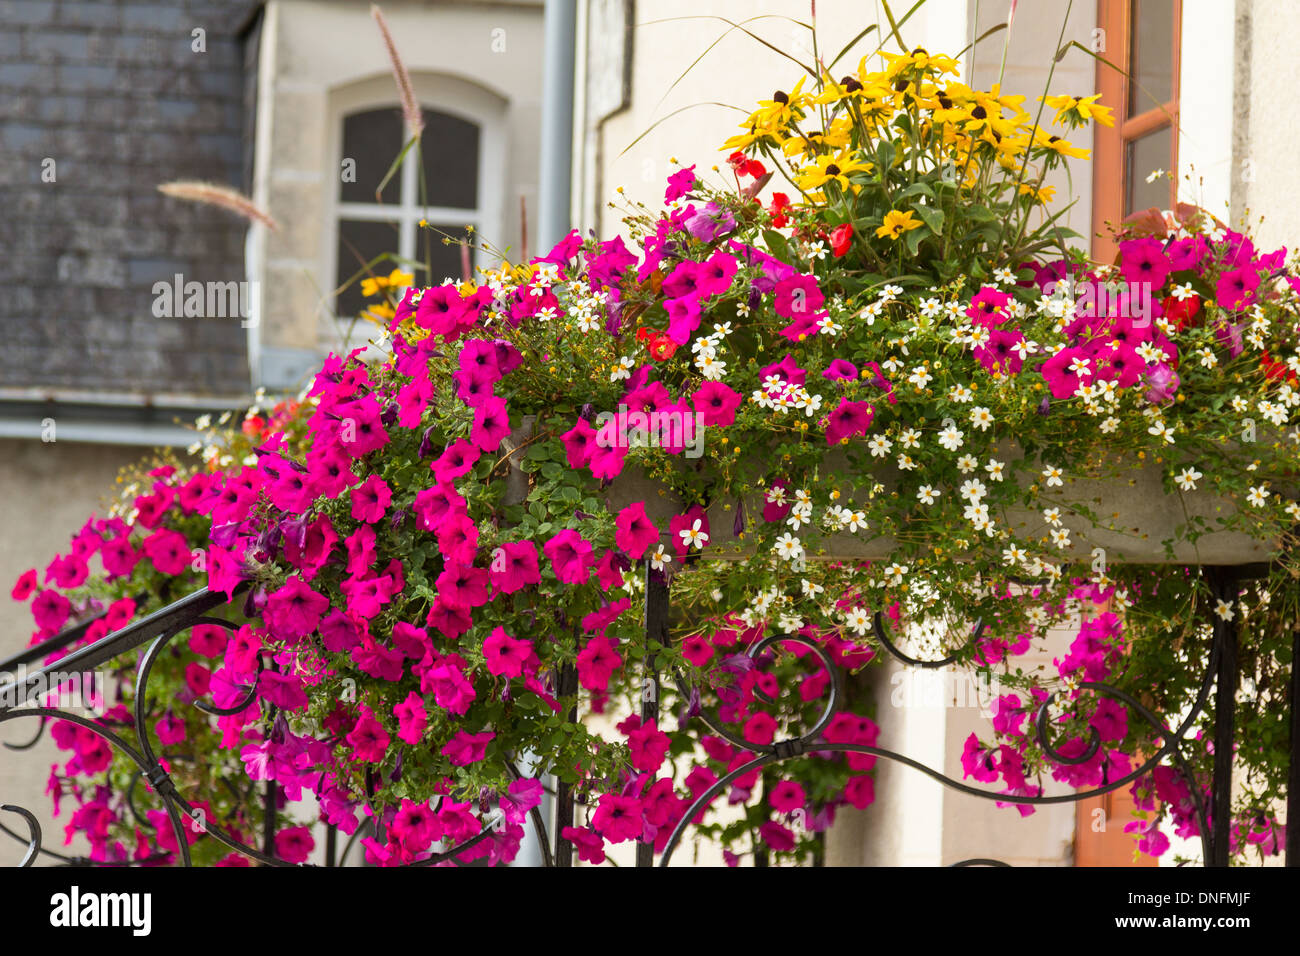 Surfinia Petunia High Resolution Stock Photography And Images Alamy